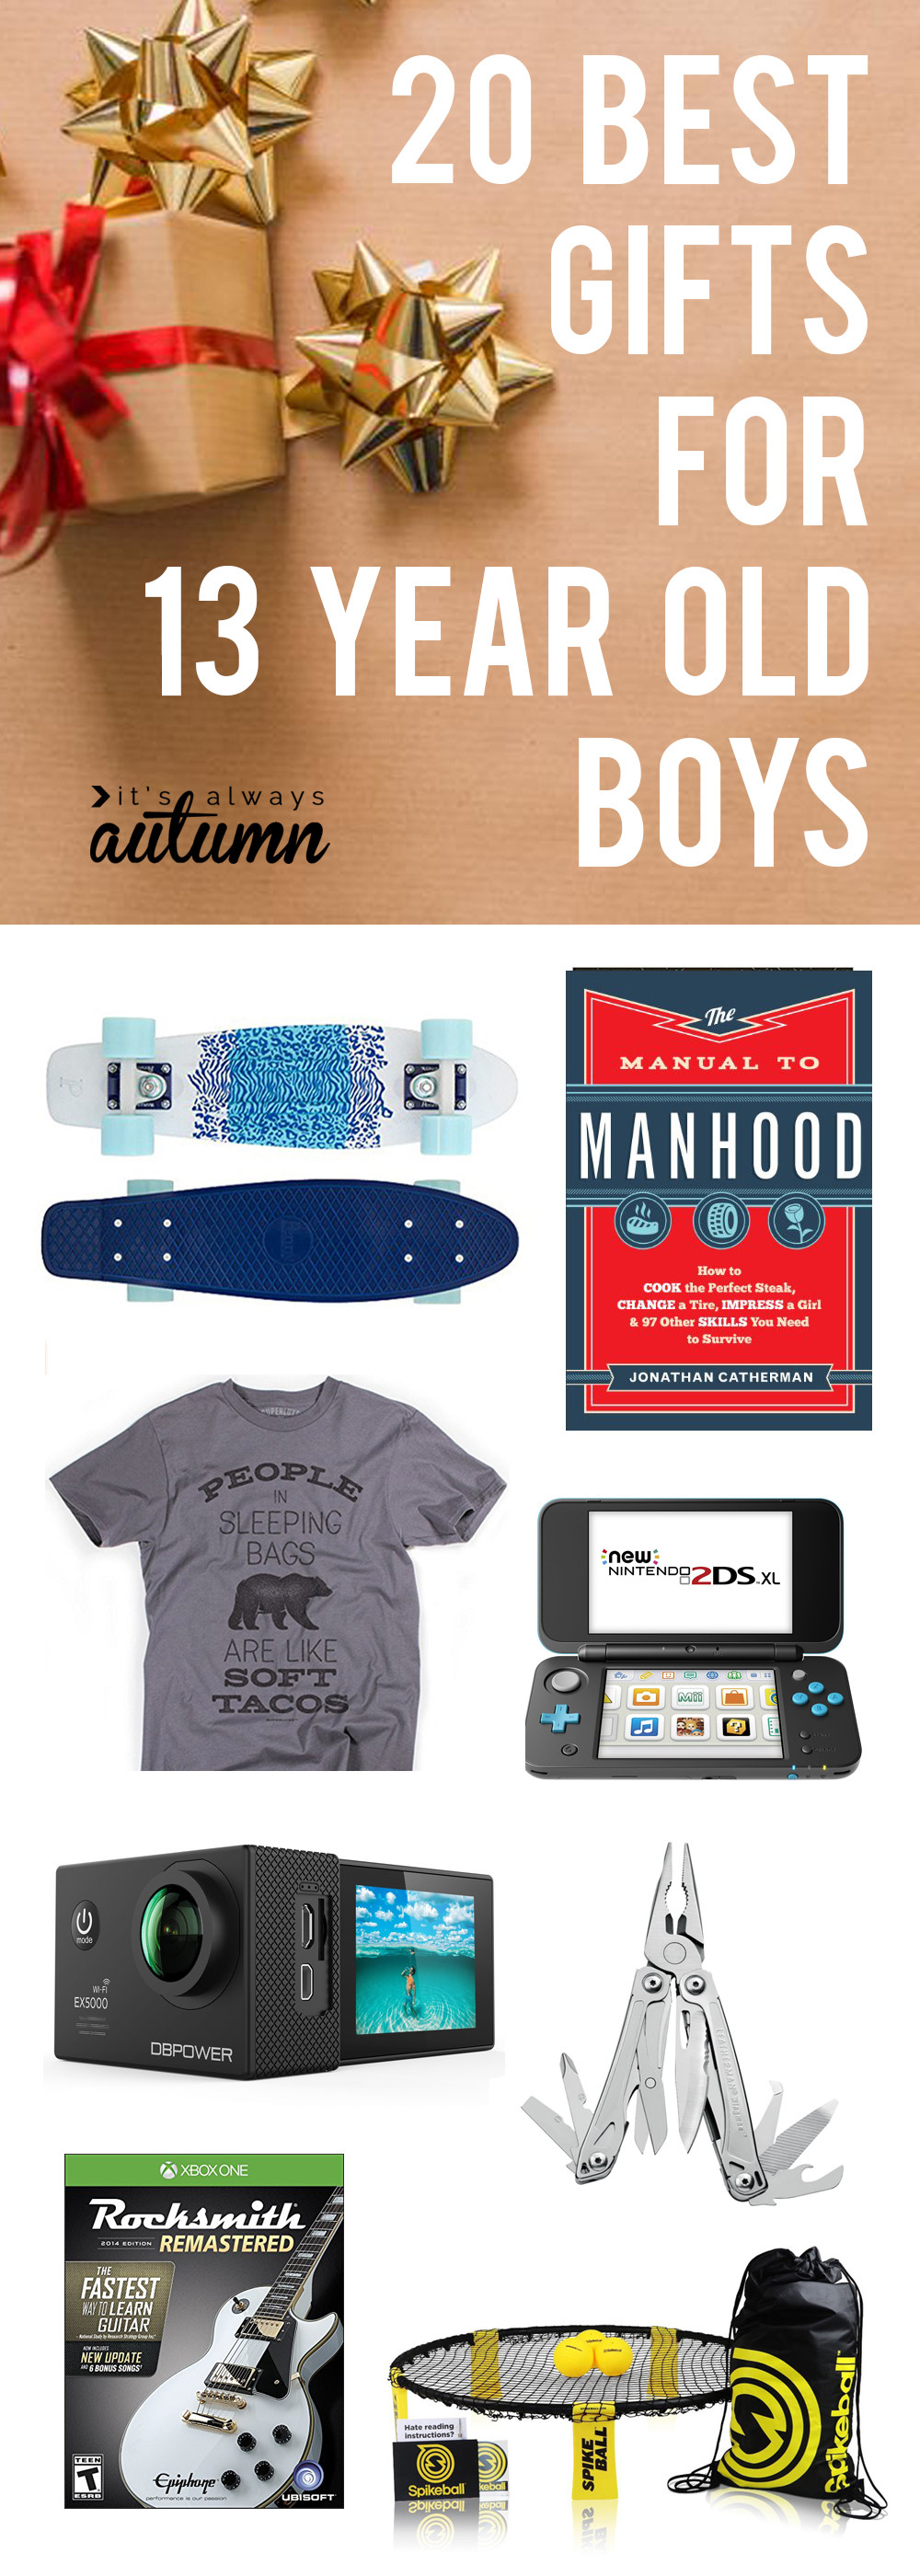 Best ideas about Gift Ideas 13 Year Old Boy . Save or Pin best Christmas ts for 13 year old boys It s Always Autumn Now.